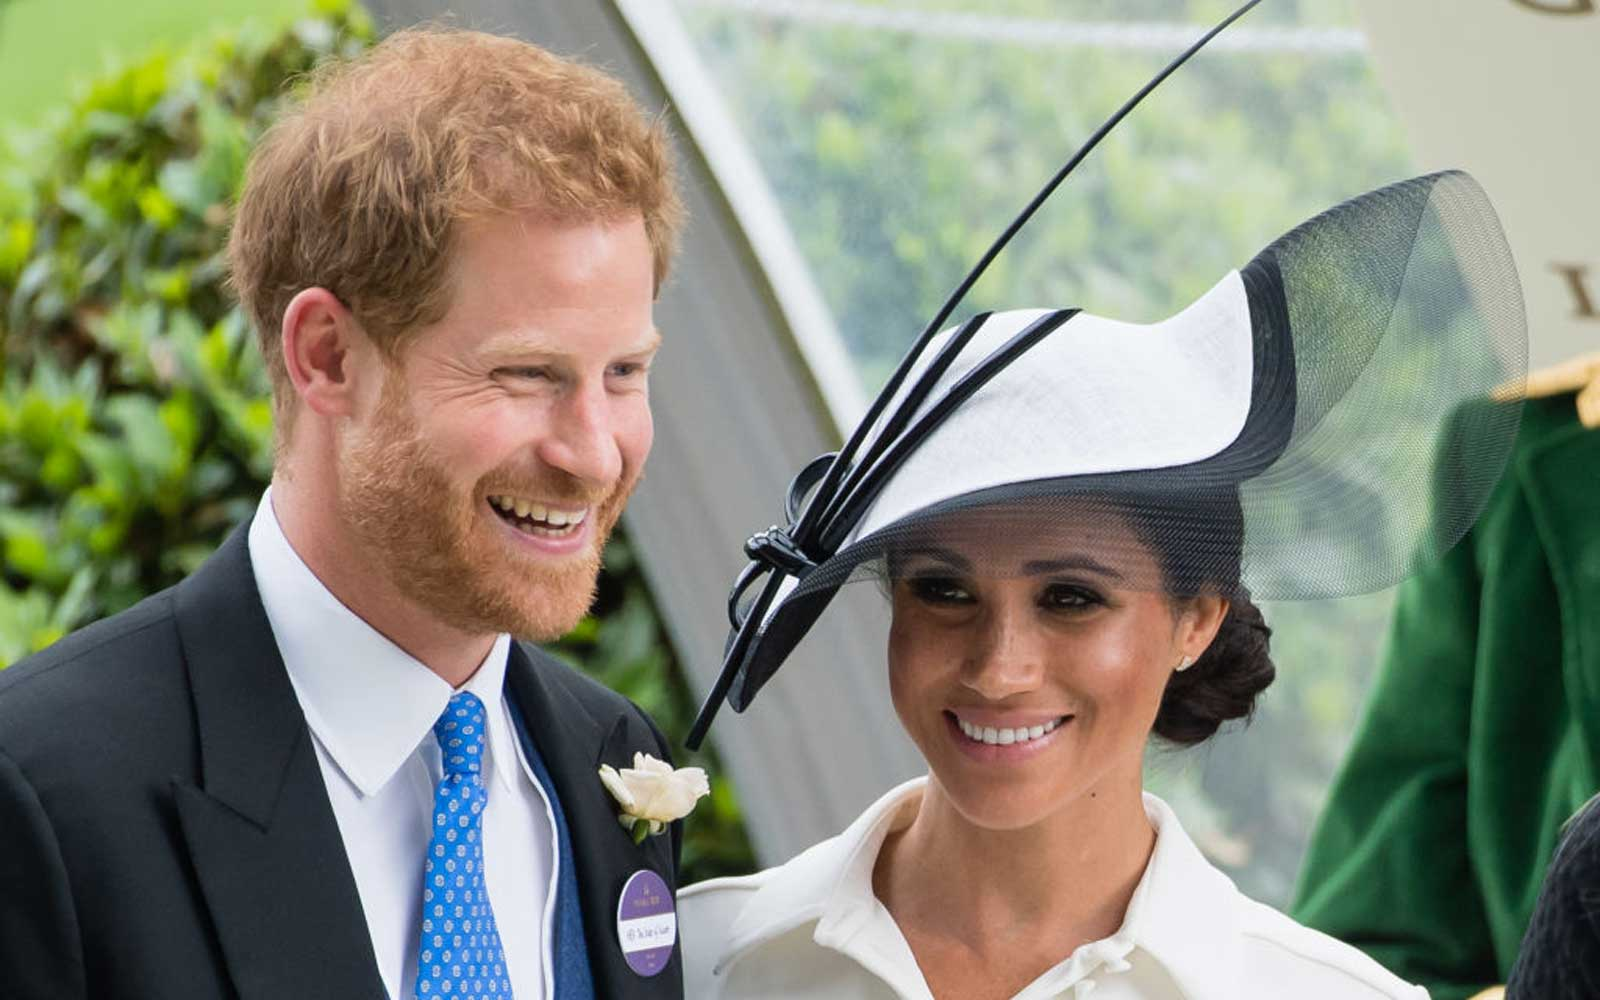 Meghan Markle Supports Prince Harry at Polo Match on Princess Diana's Birthday